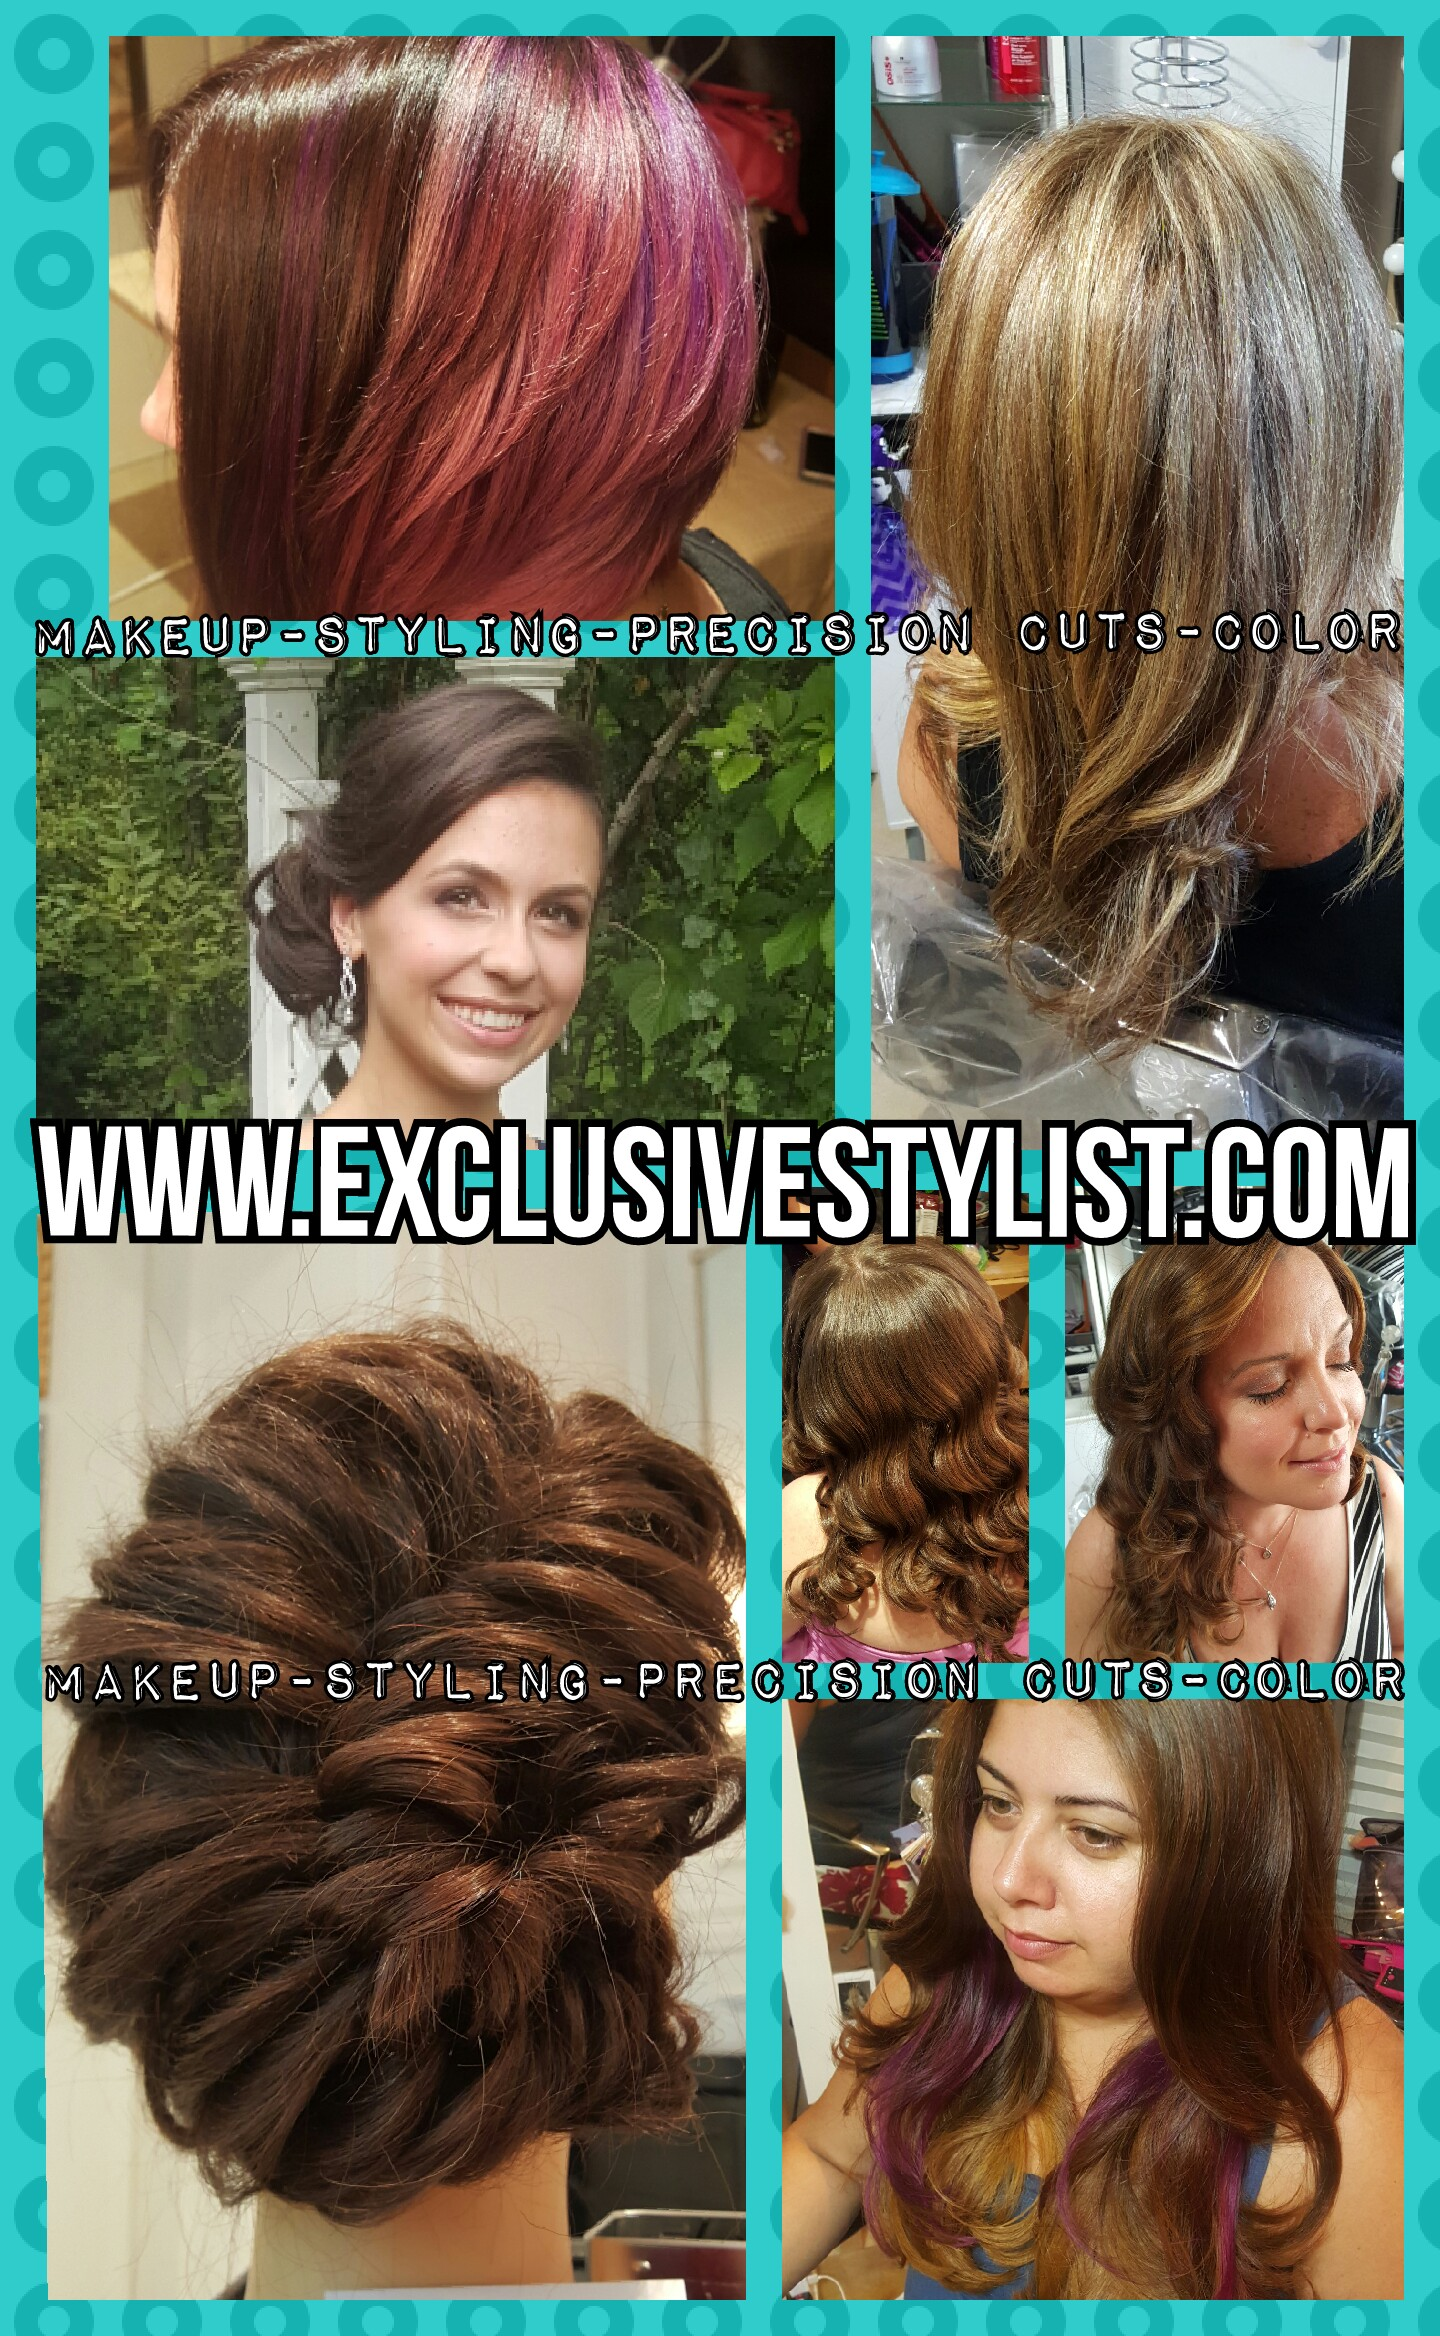 Updos & Makeup for All Formal Events